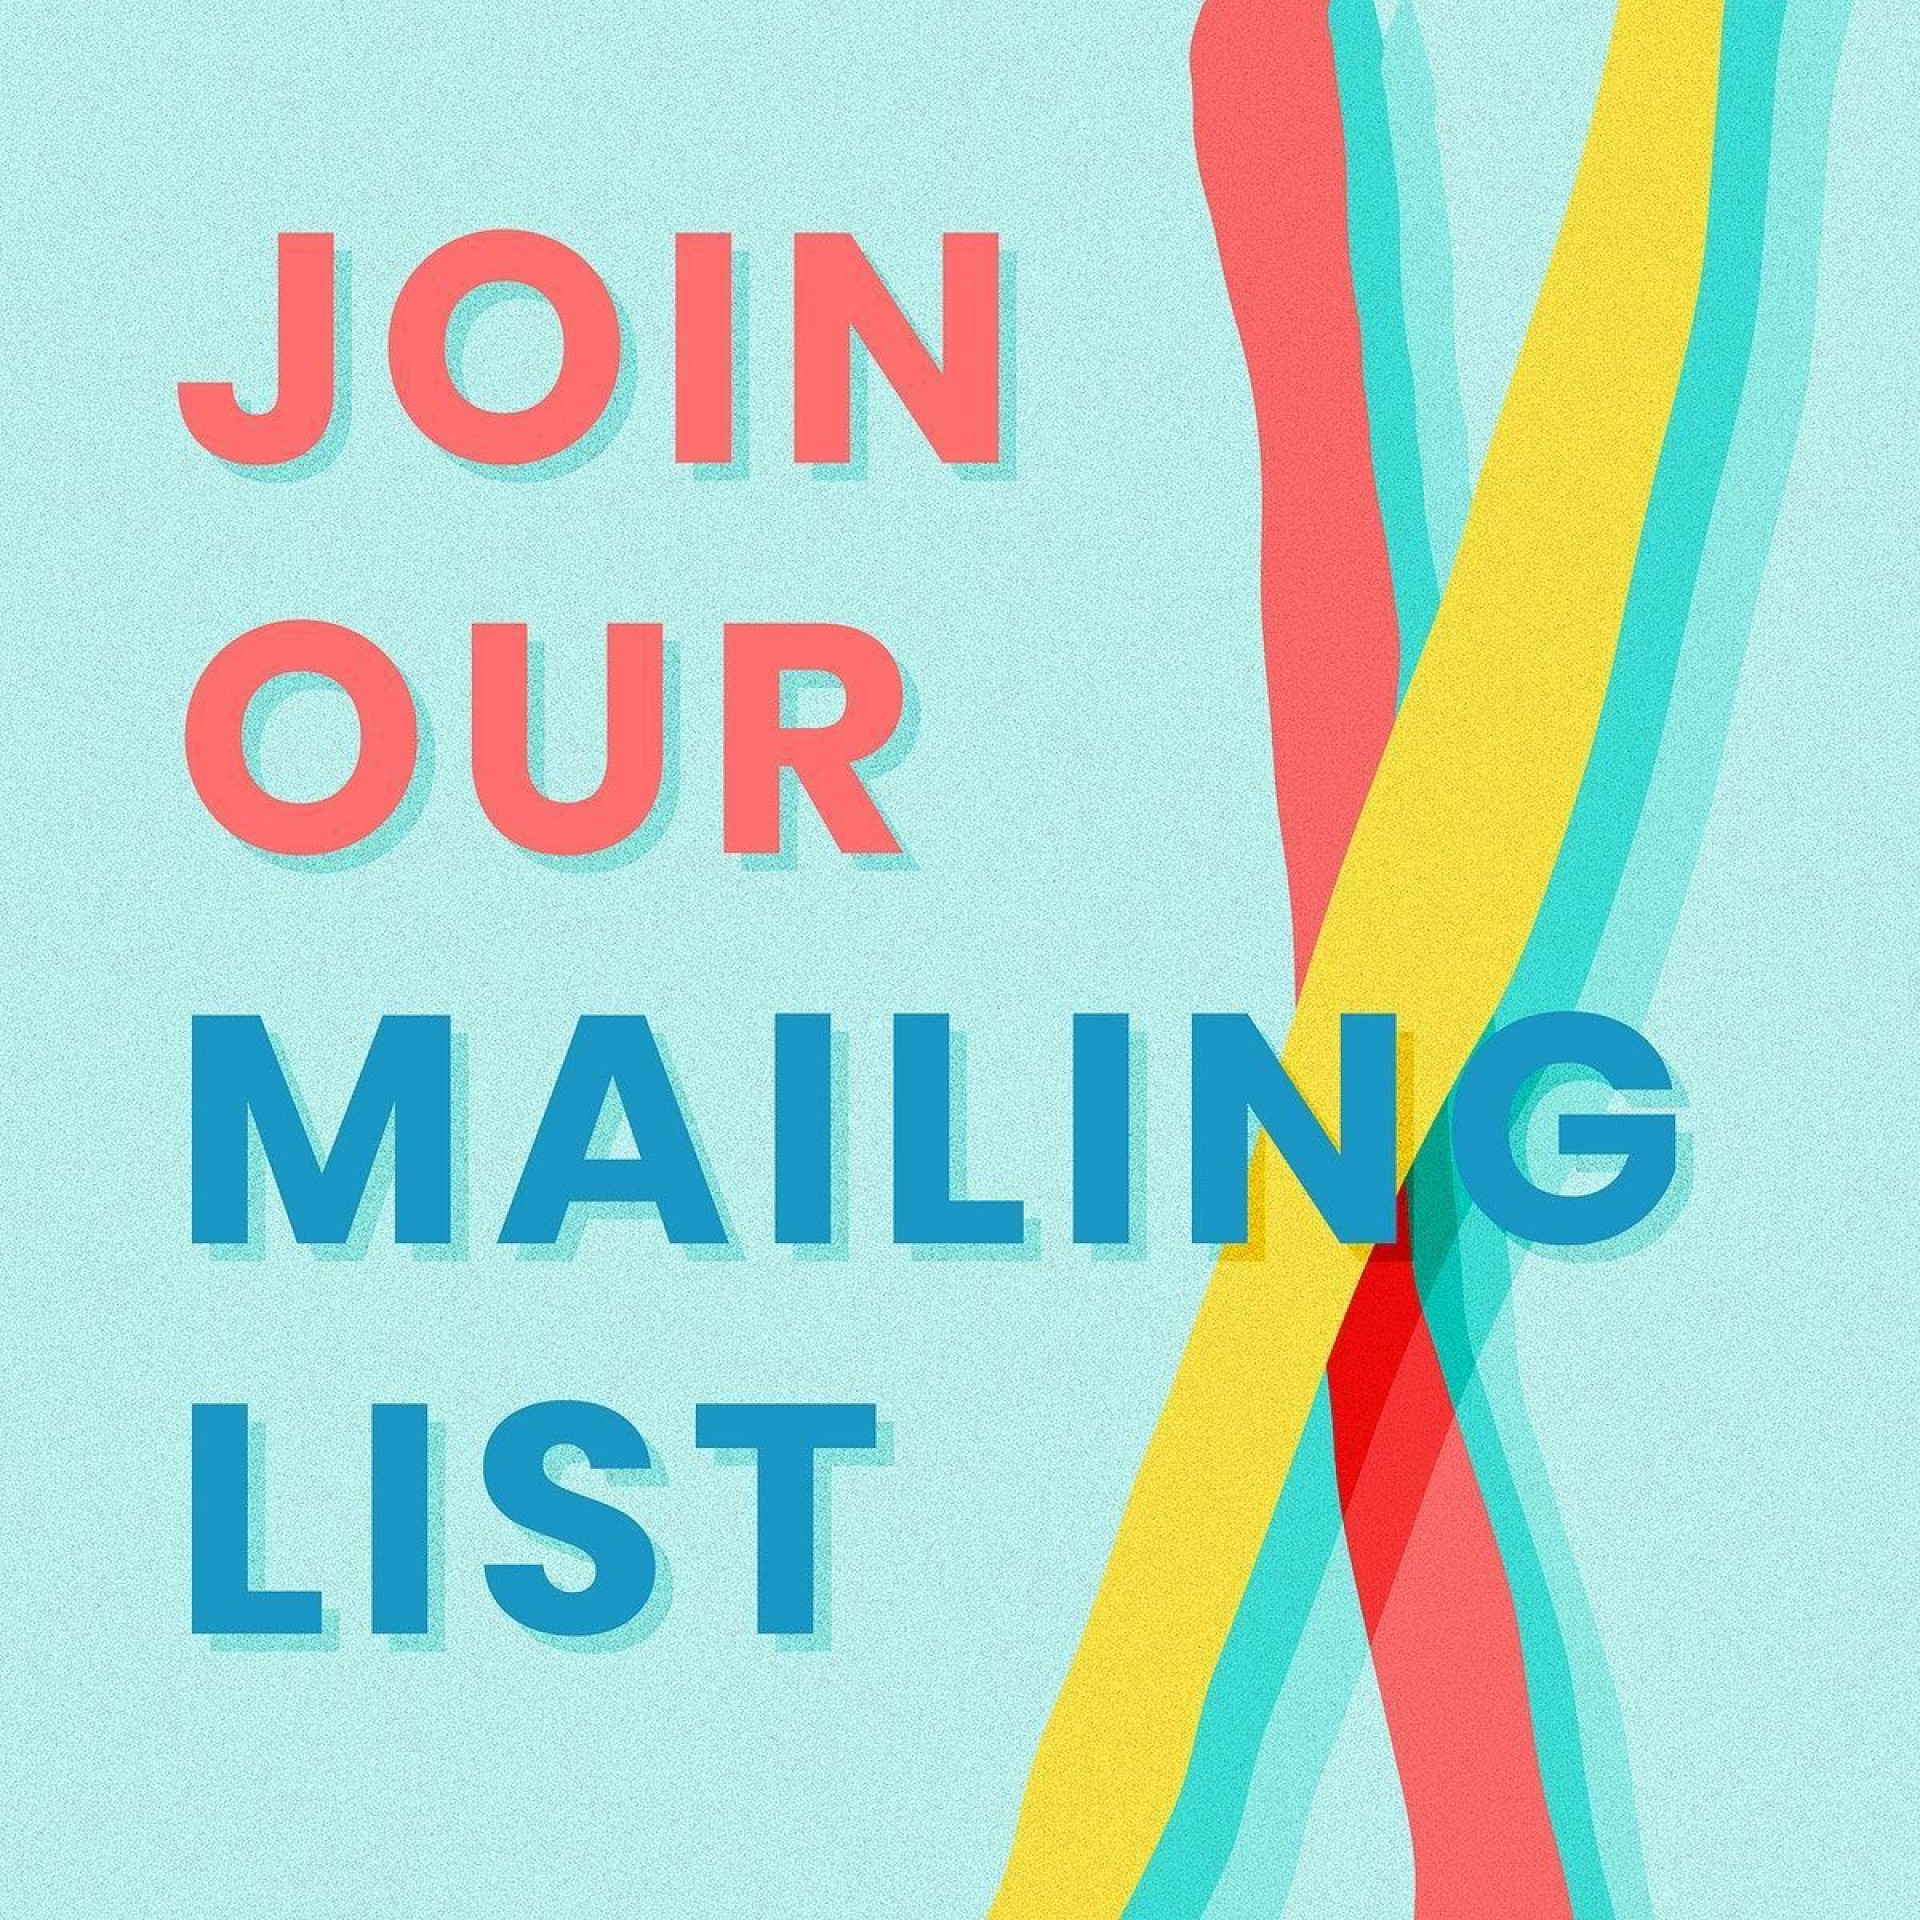 003 Surprising Join Our Mailing List Template Highest Clarity  Email1920